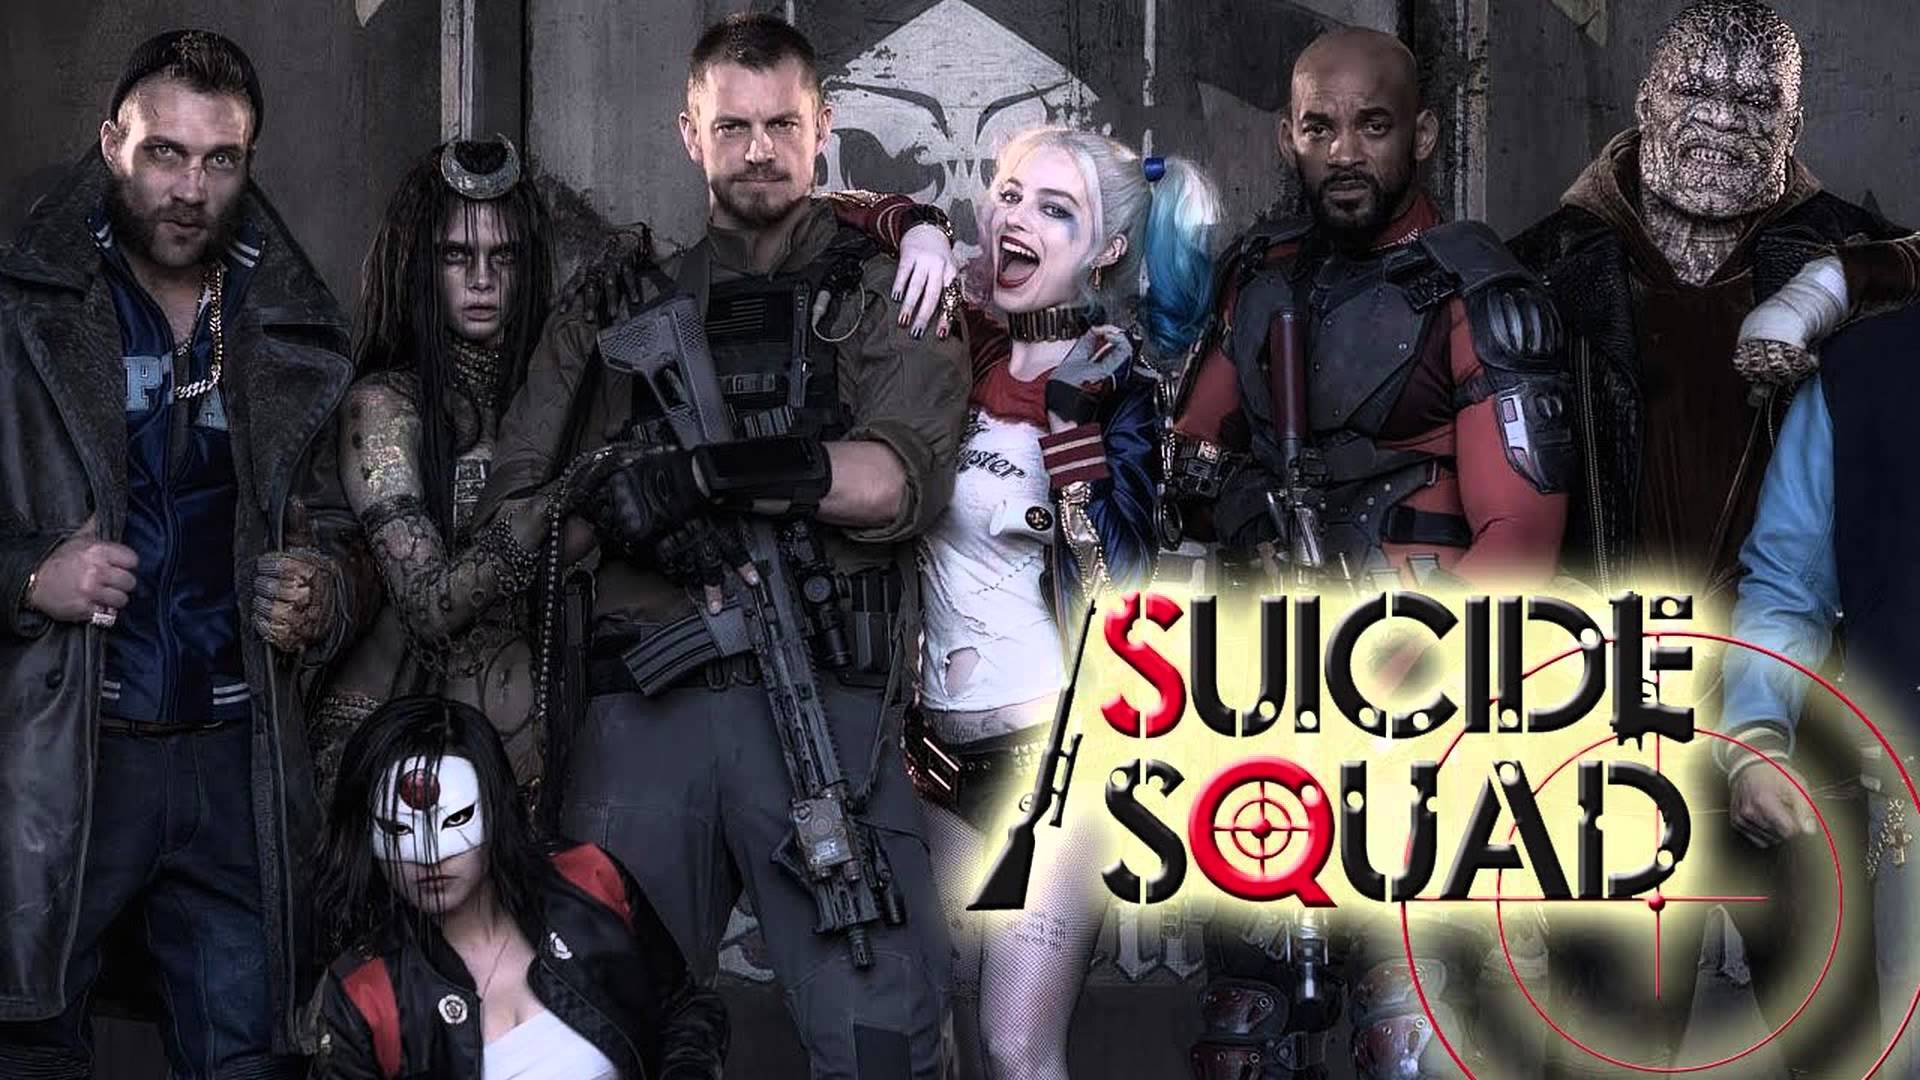 Suicide Squad Movie Trailer News Cast